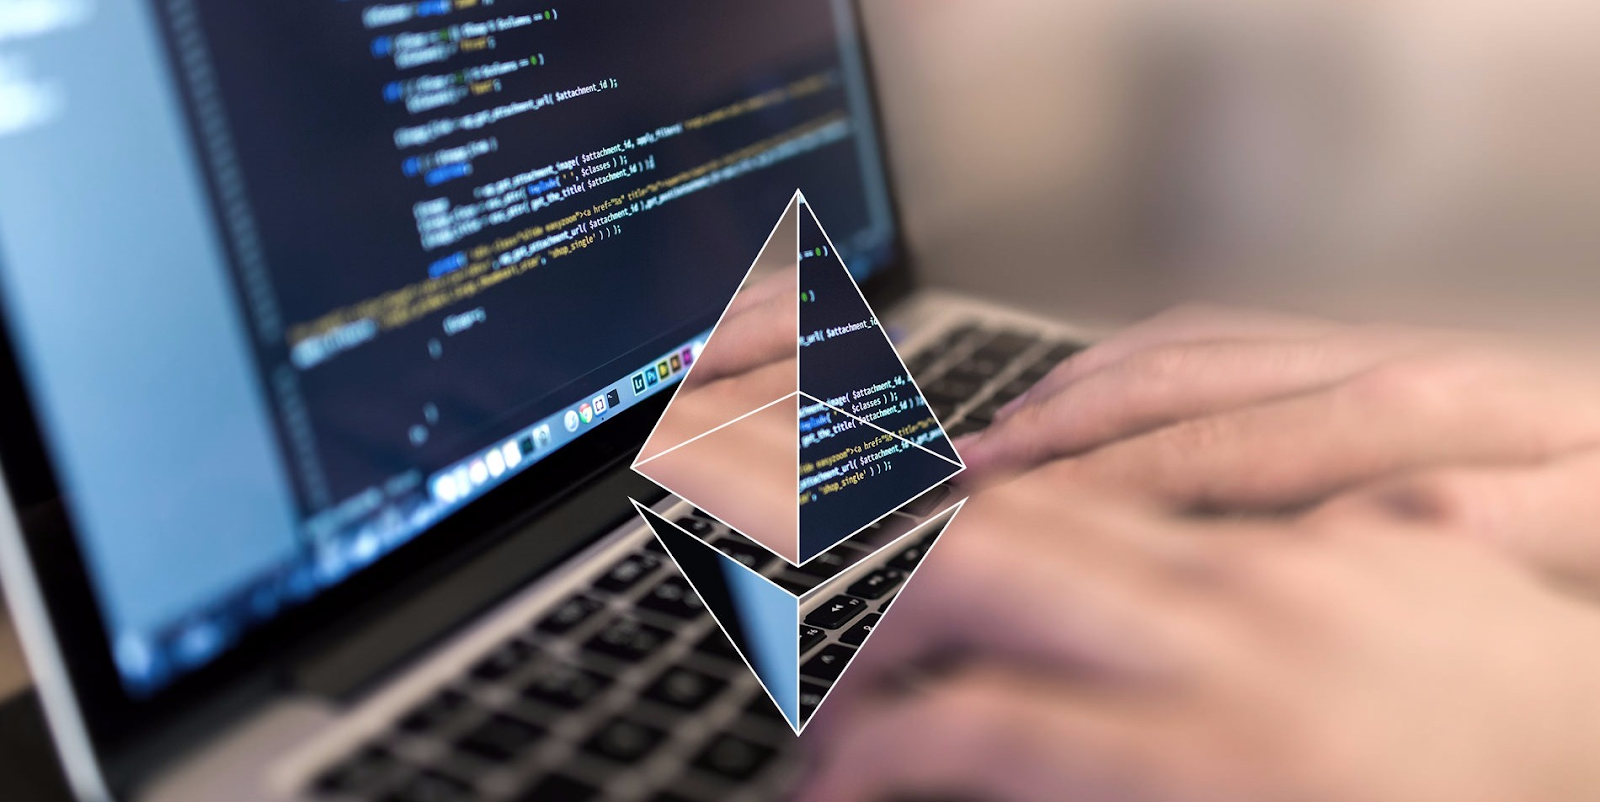 Ethereum Consortium Launches Token Initiative With Microsoft, JPMorgan Chase, Others